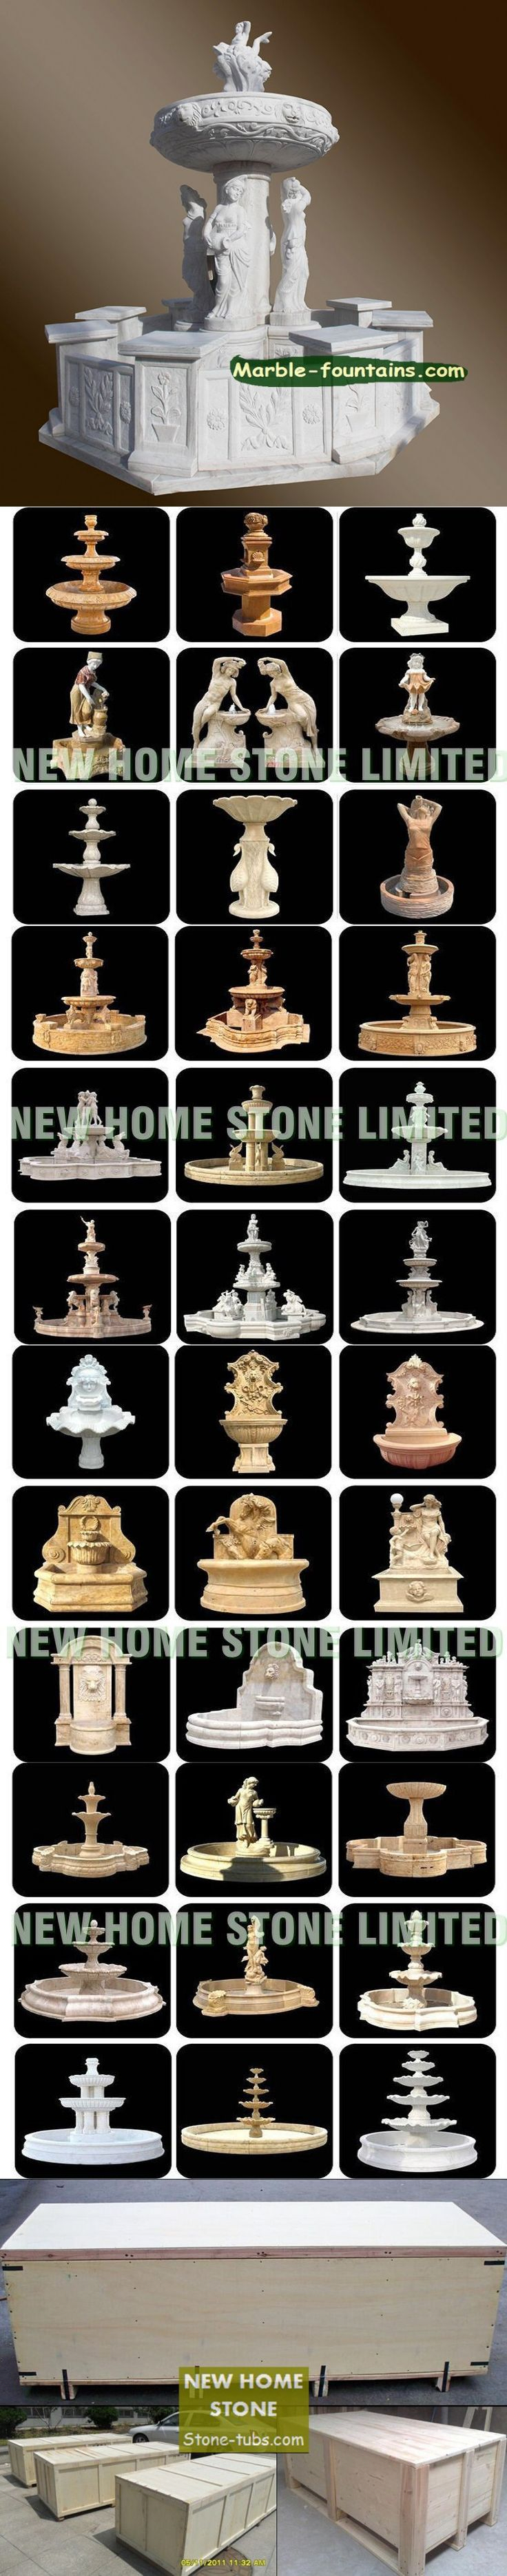 Italian Fountains for sale white marble statues fountain best decoration garden Italian Marble fountain for sale $6445